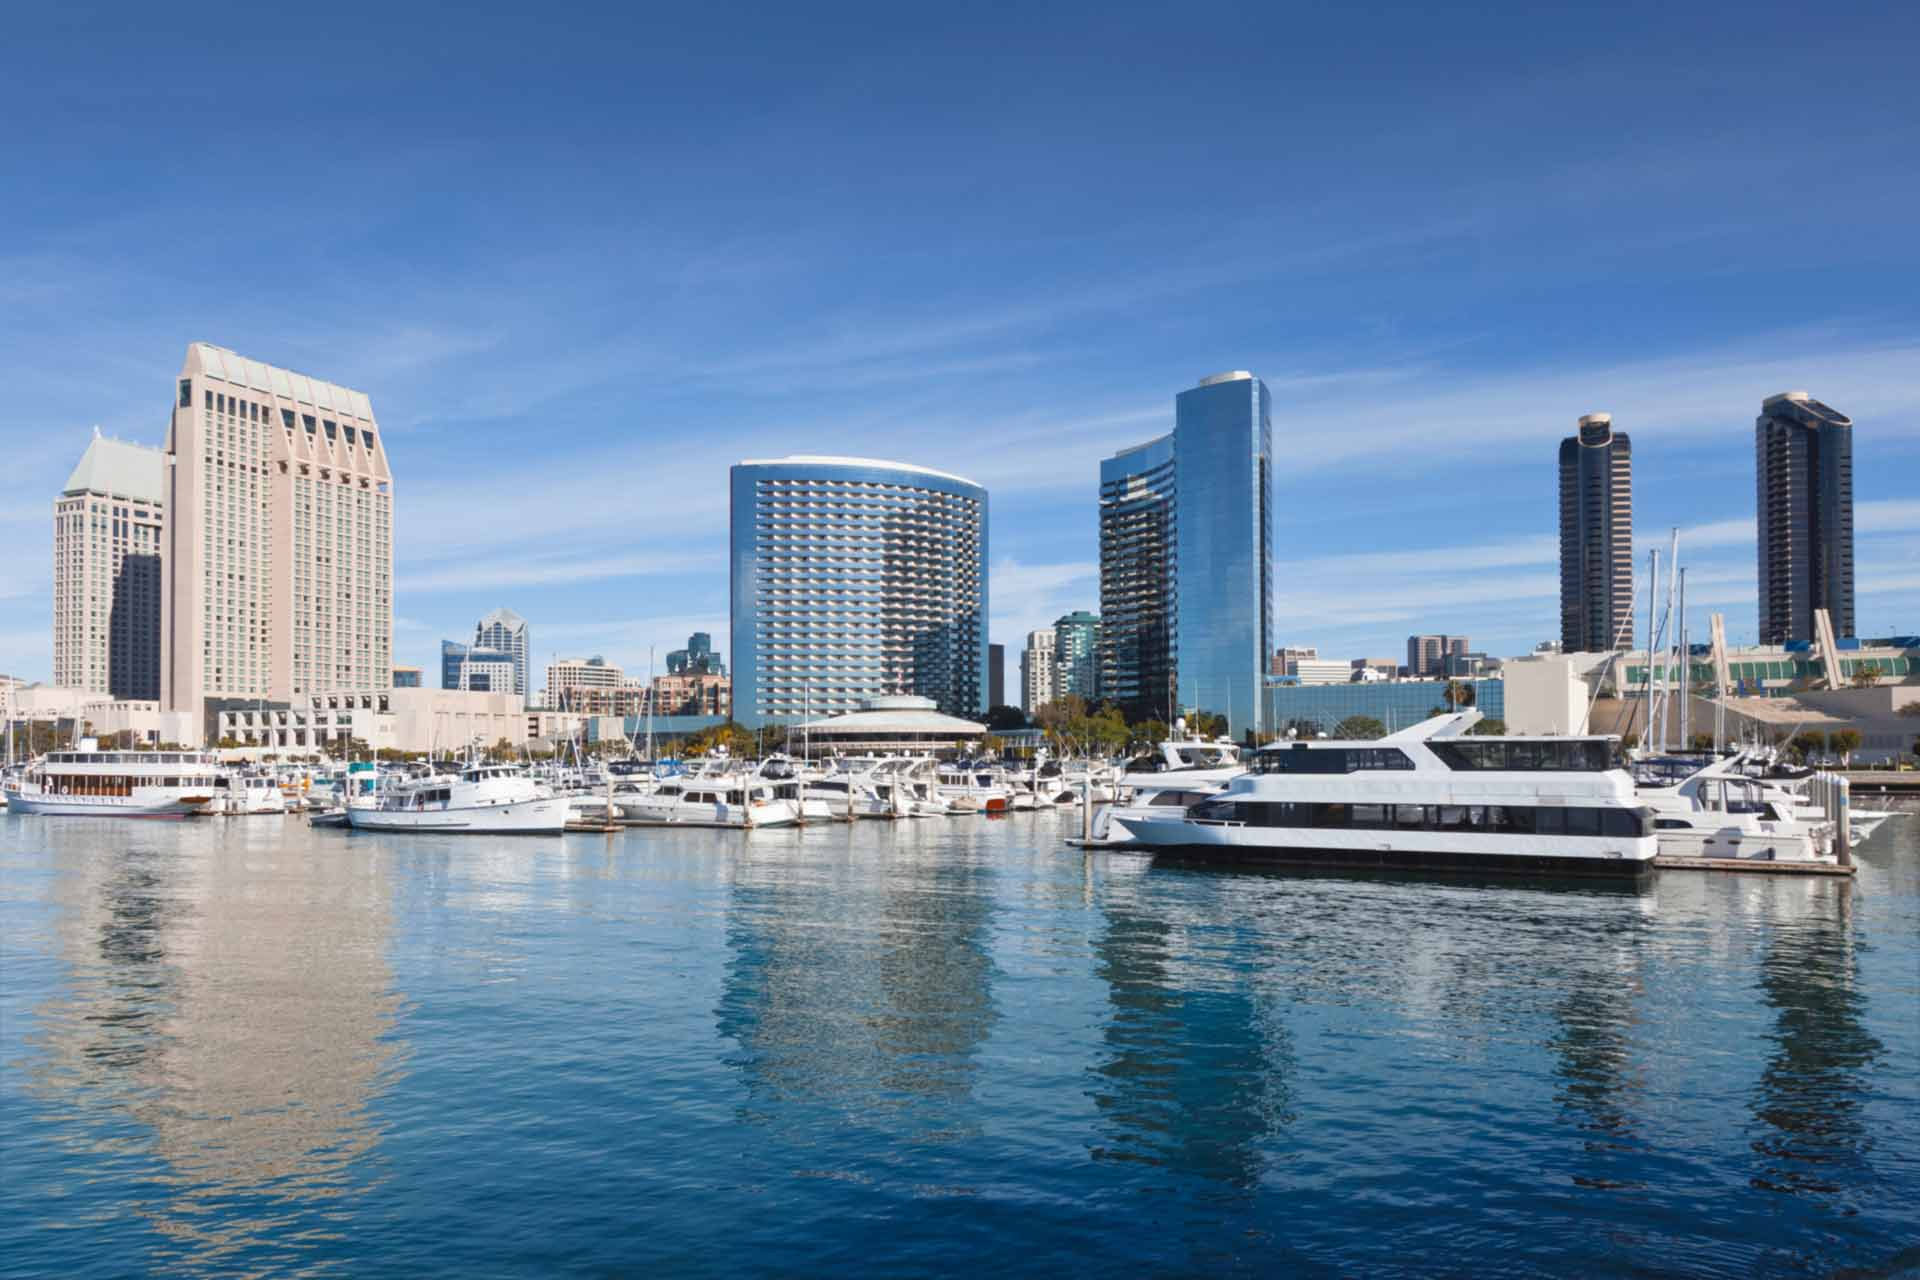 San Diego Harbor Cruises - Sightseeing Boat Tours in Southern California